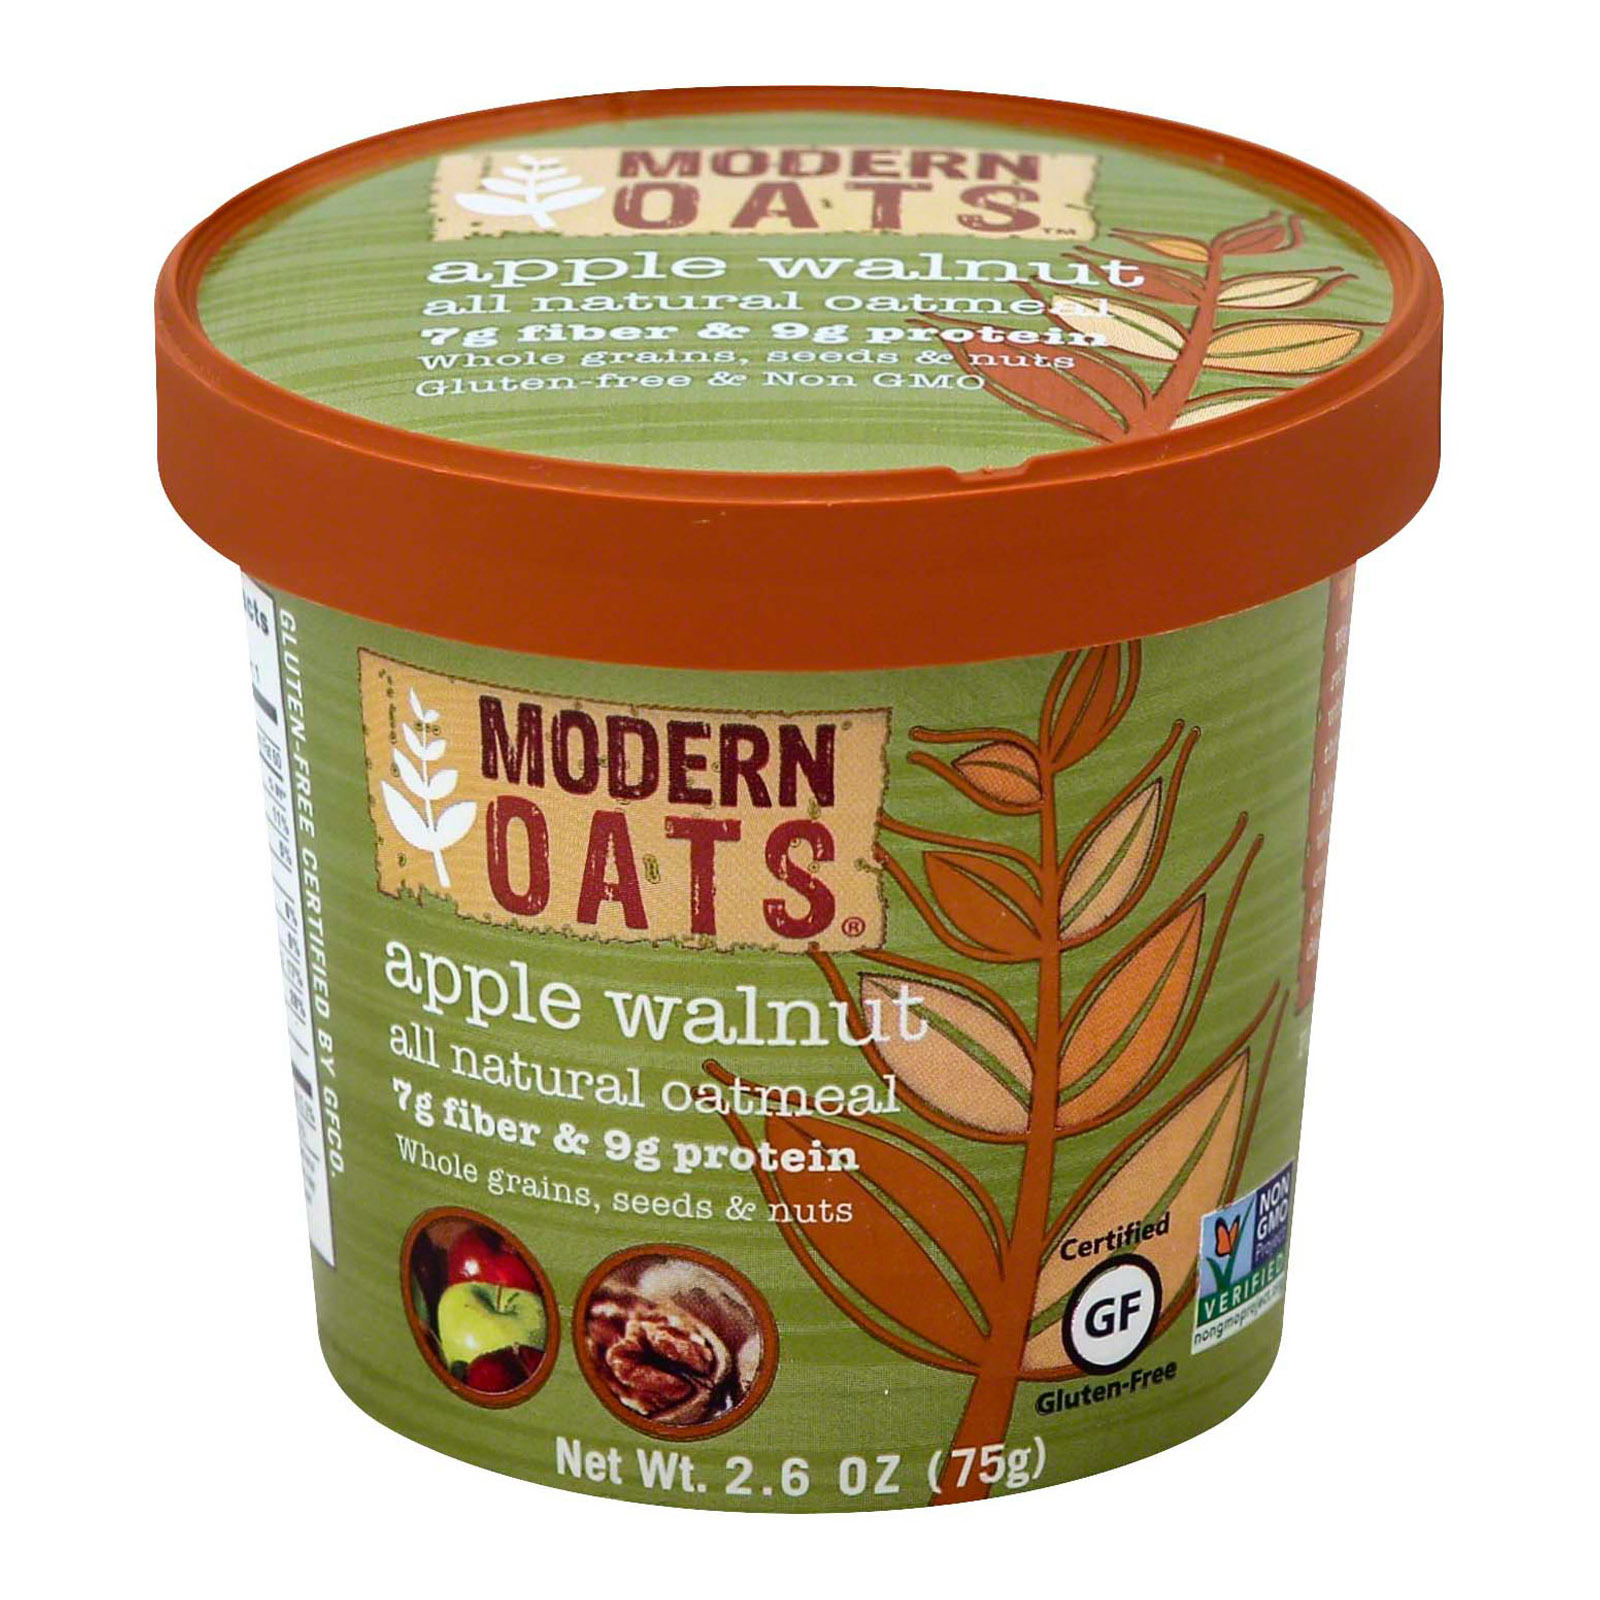 Modern Oats All Natural Oatmeal - Apple Walnut - Case of 6 - 2.6 oz.